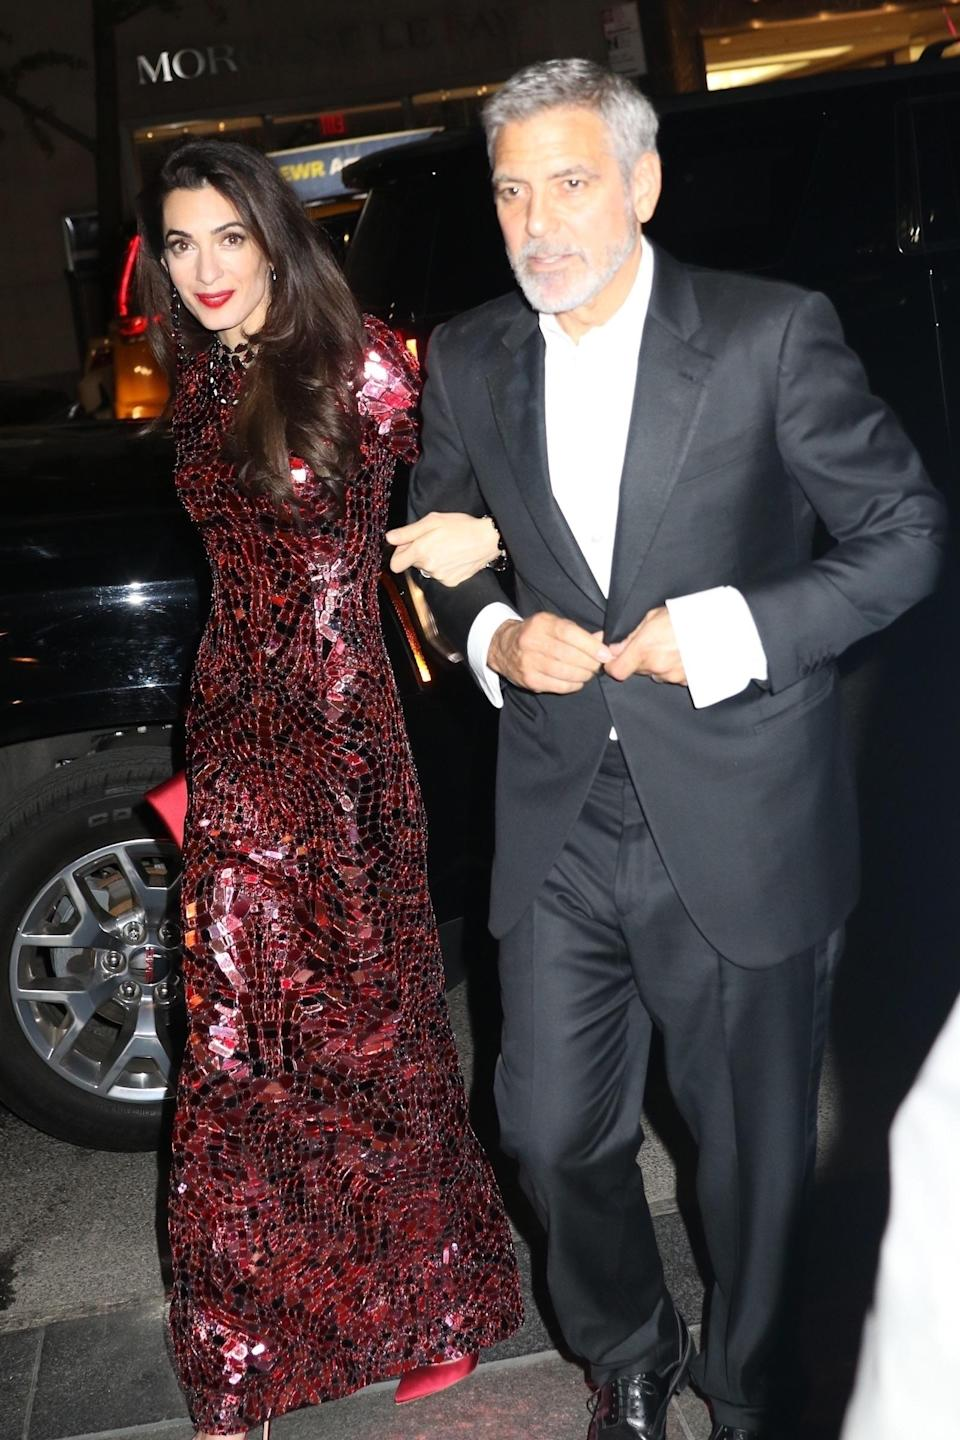 <p>George Clooney and Amal Clooney were spotted returning to their hotel after the MET Gala festivities in New York City. (Photo: Backgrid) </p>